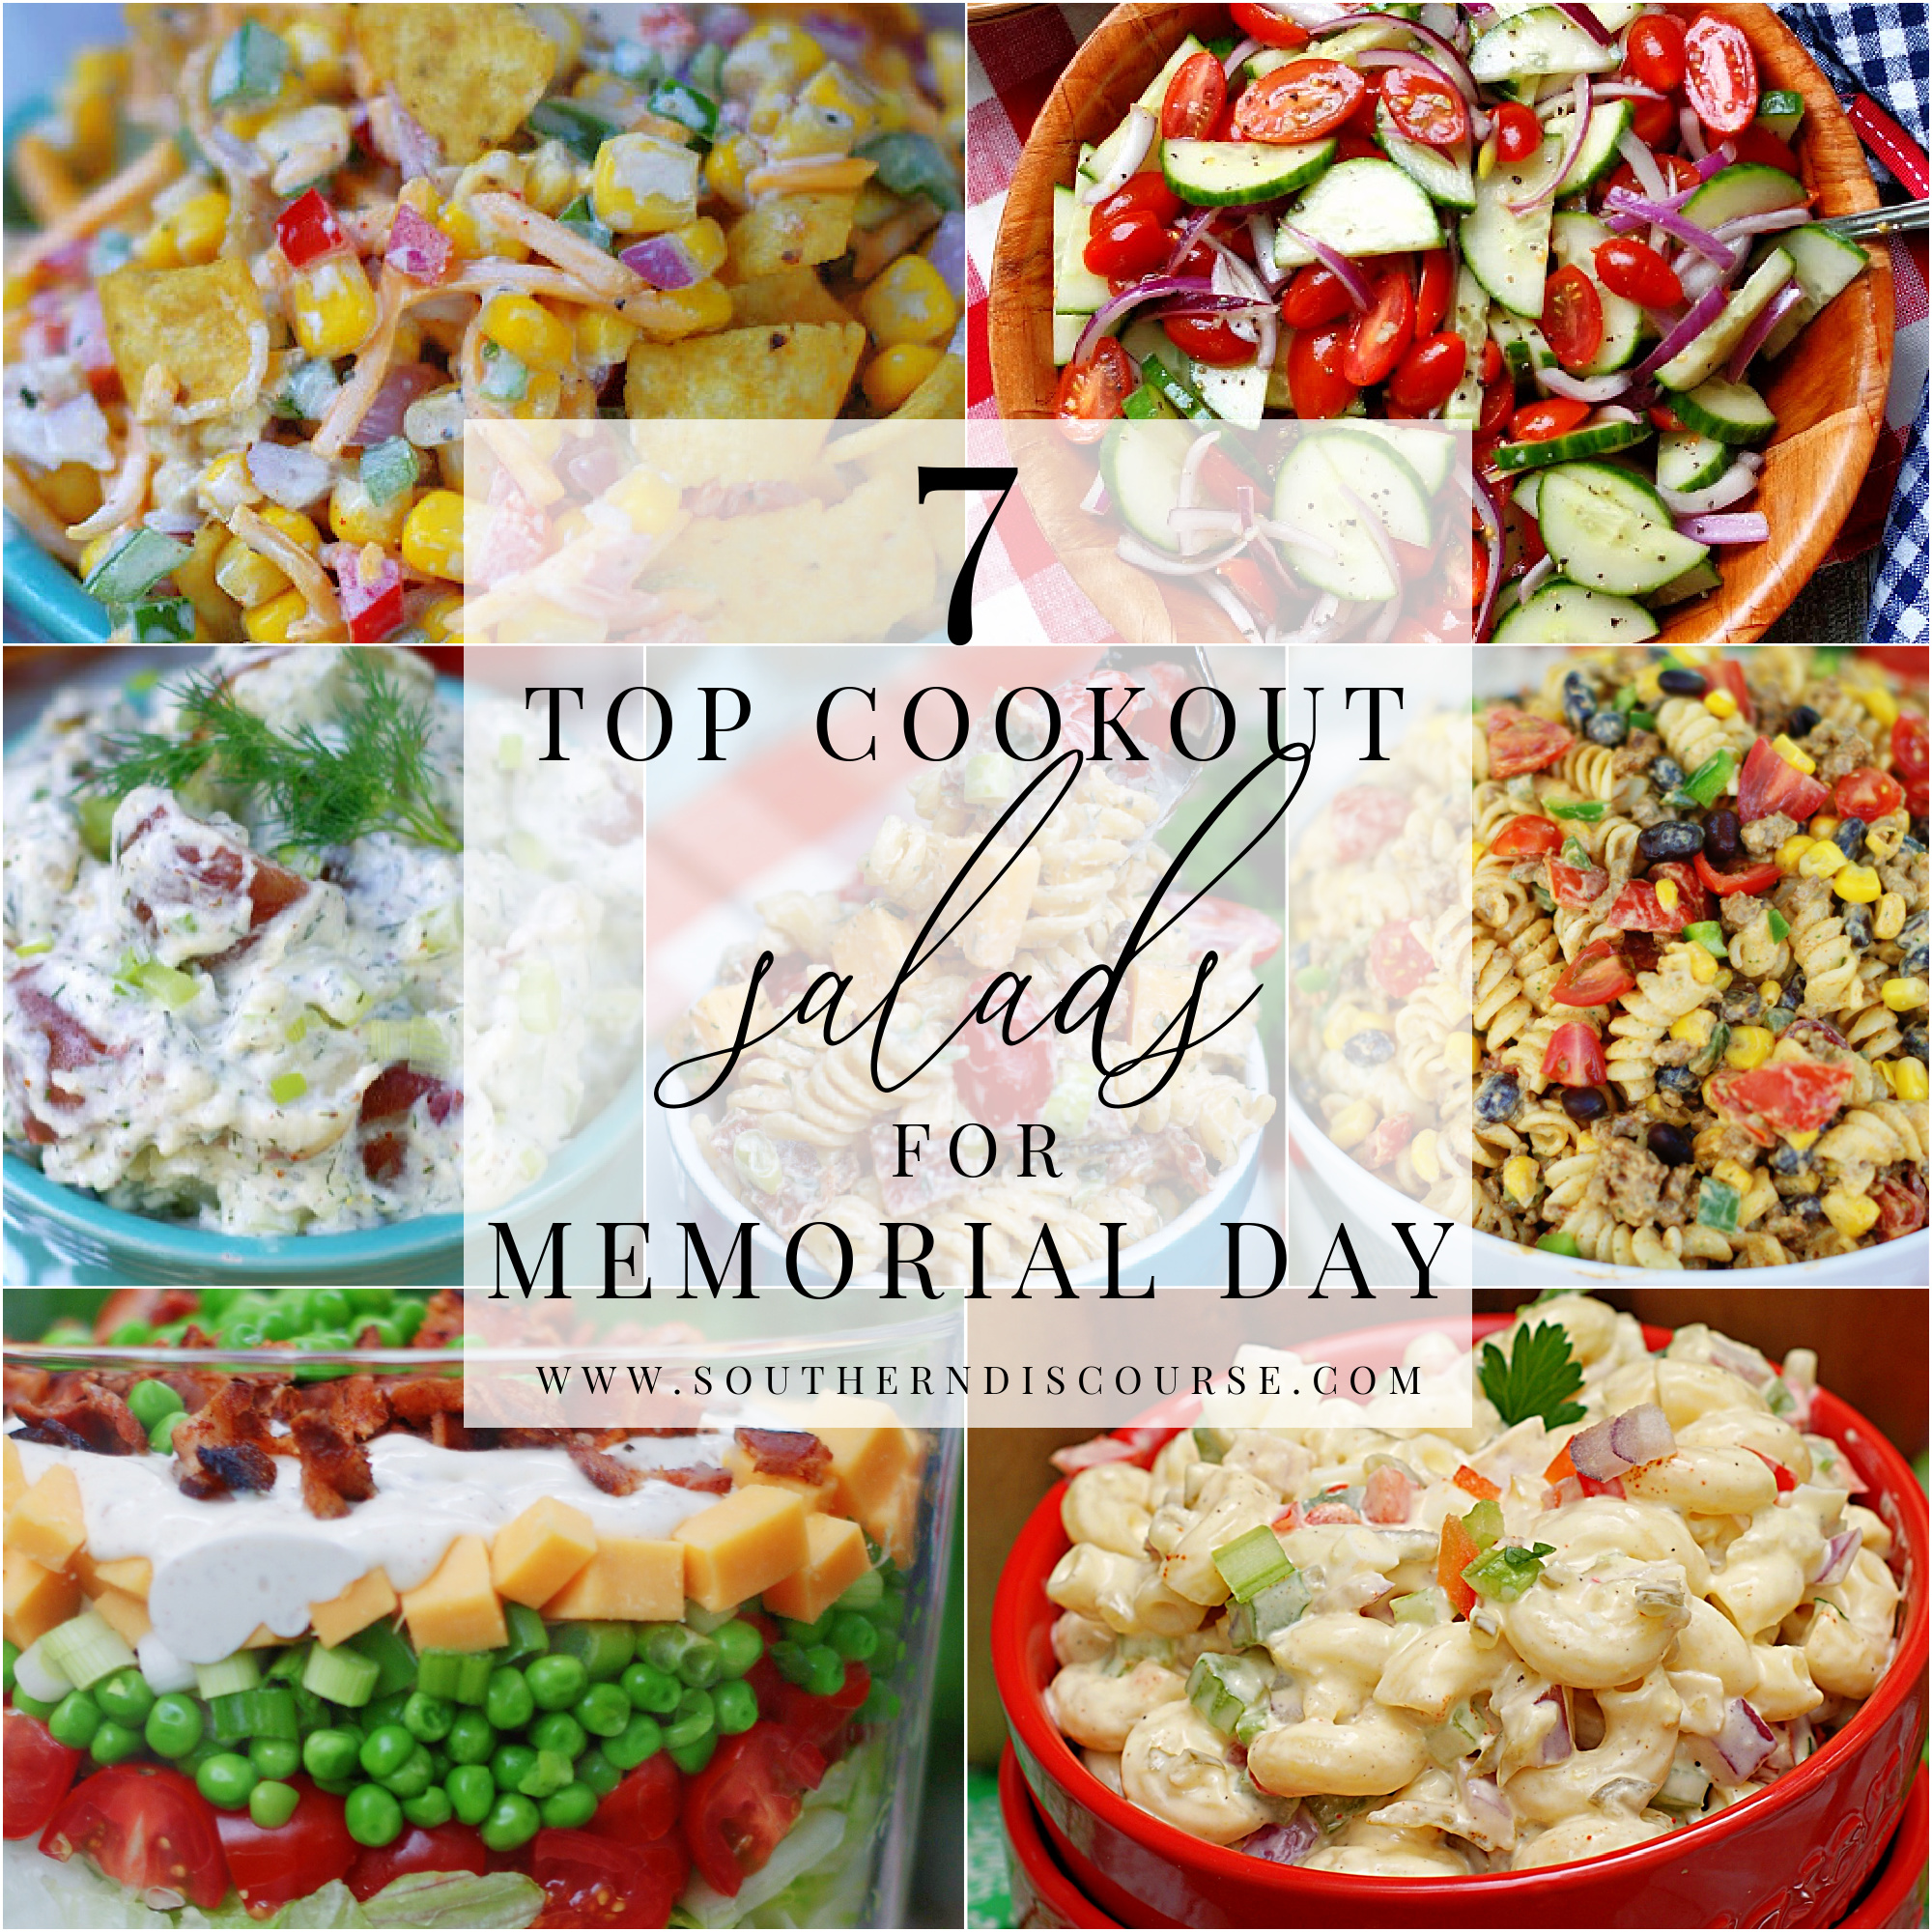 7 easy classic cookout salads for your memorial day celebration.